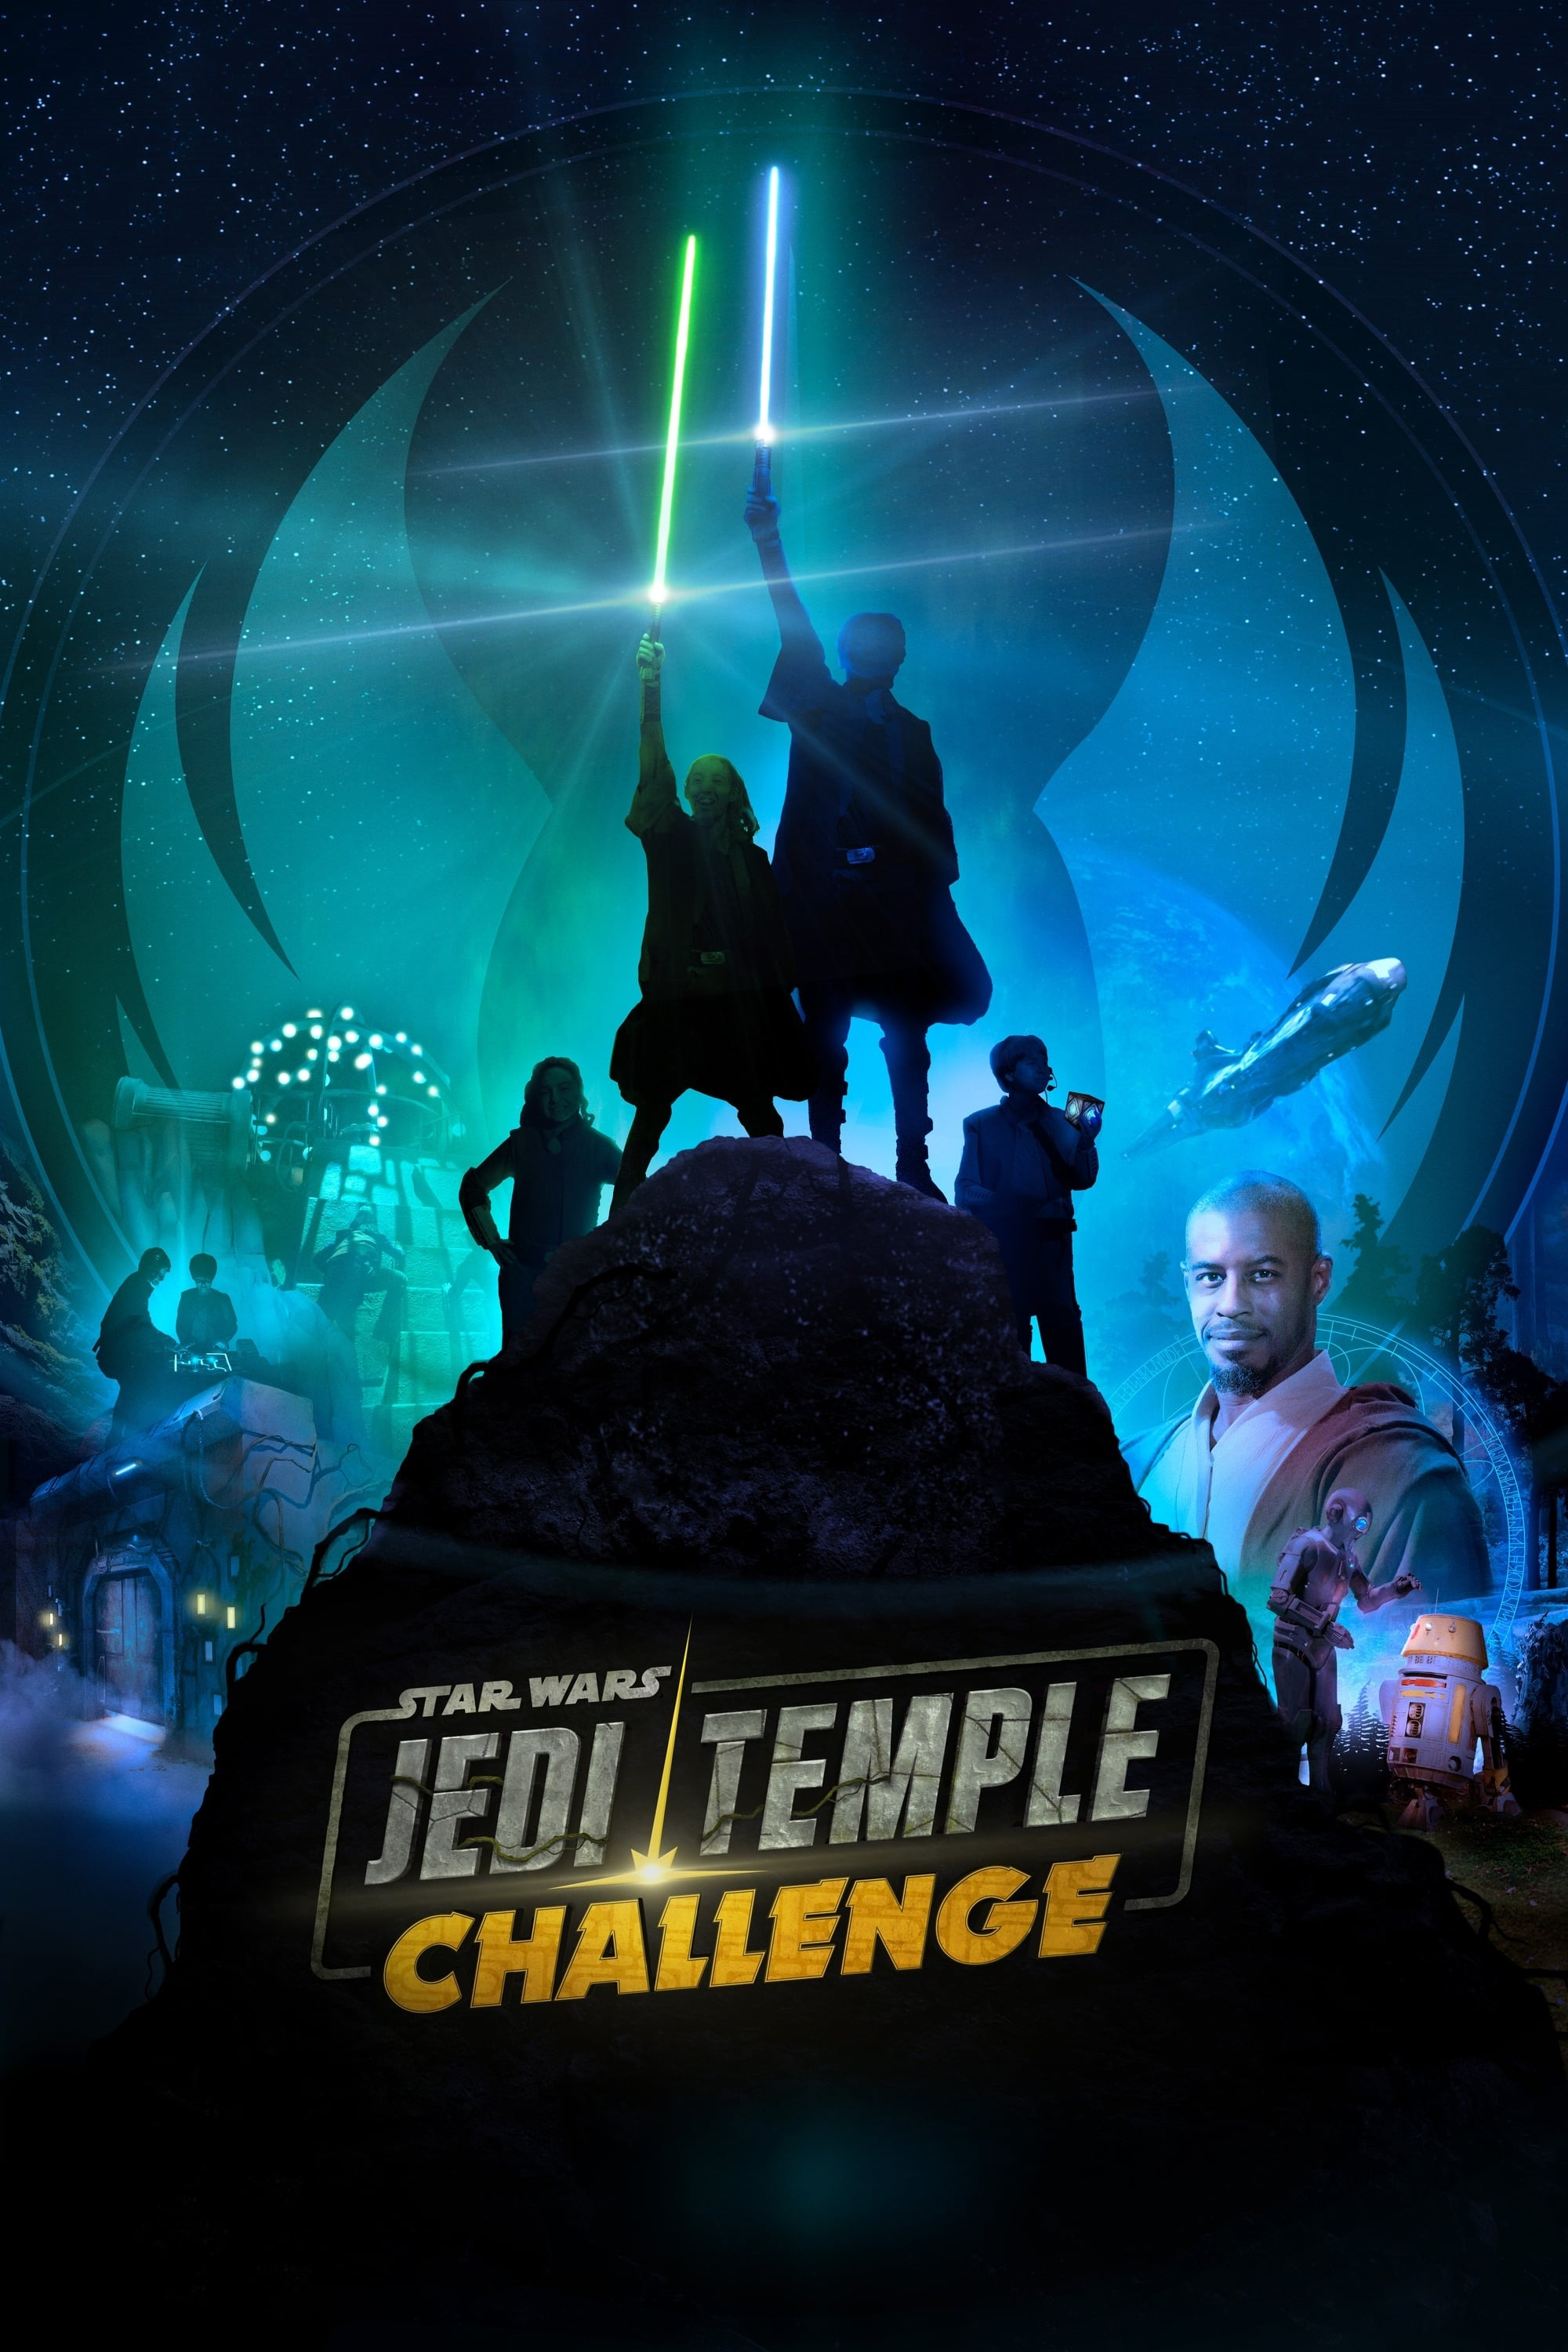 Star Wars: Jedi Temple Challenge (2020)